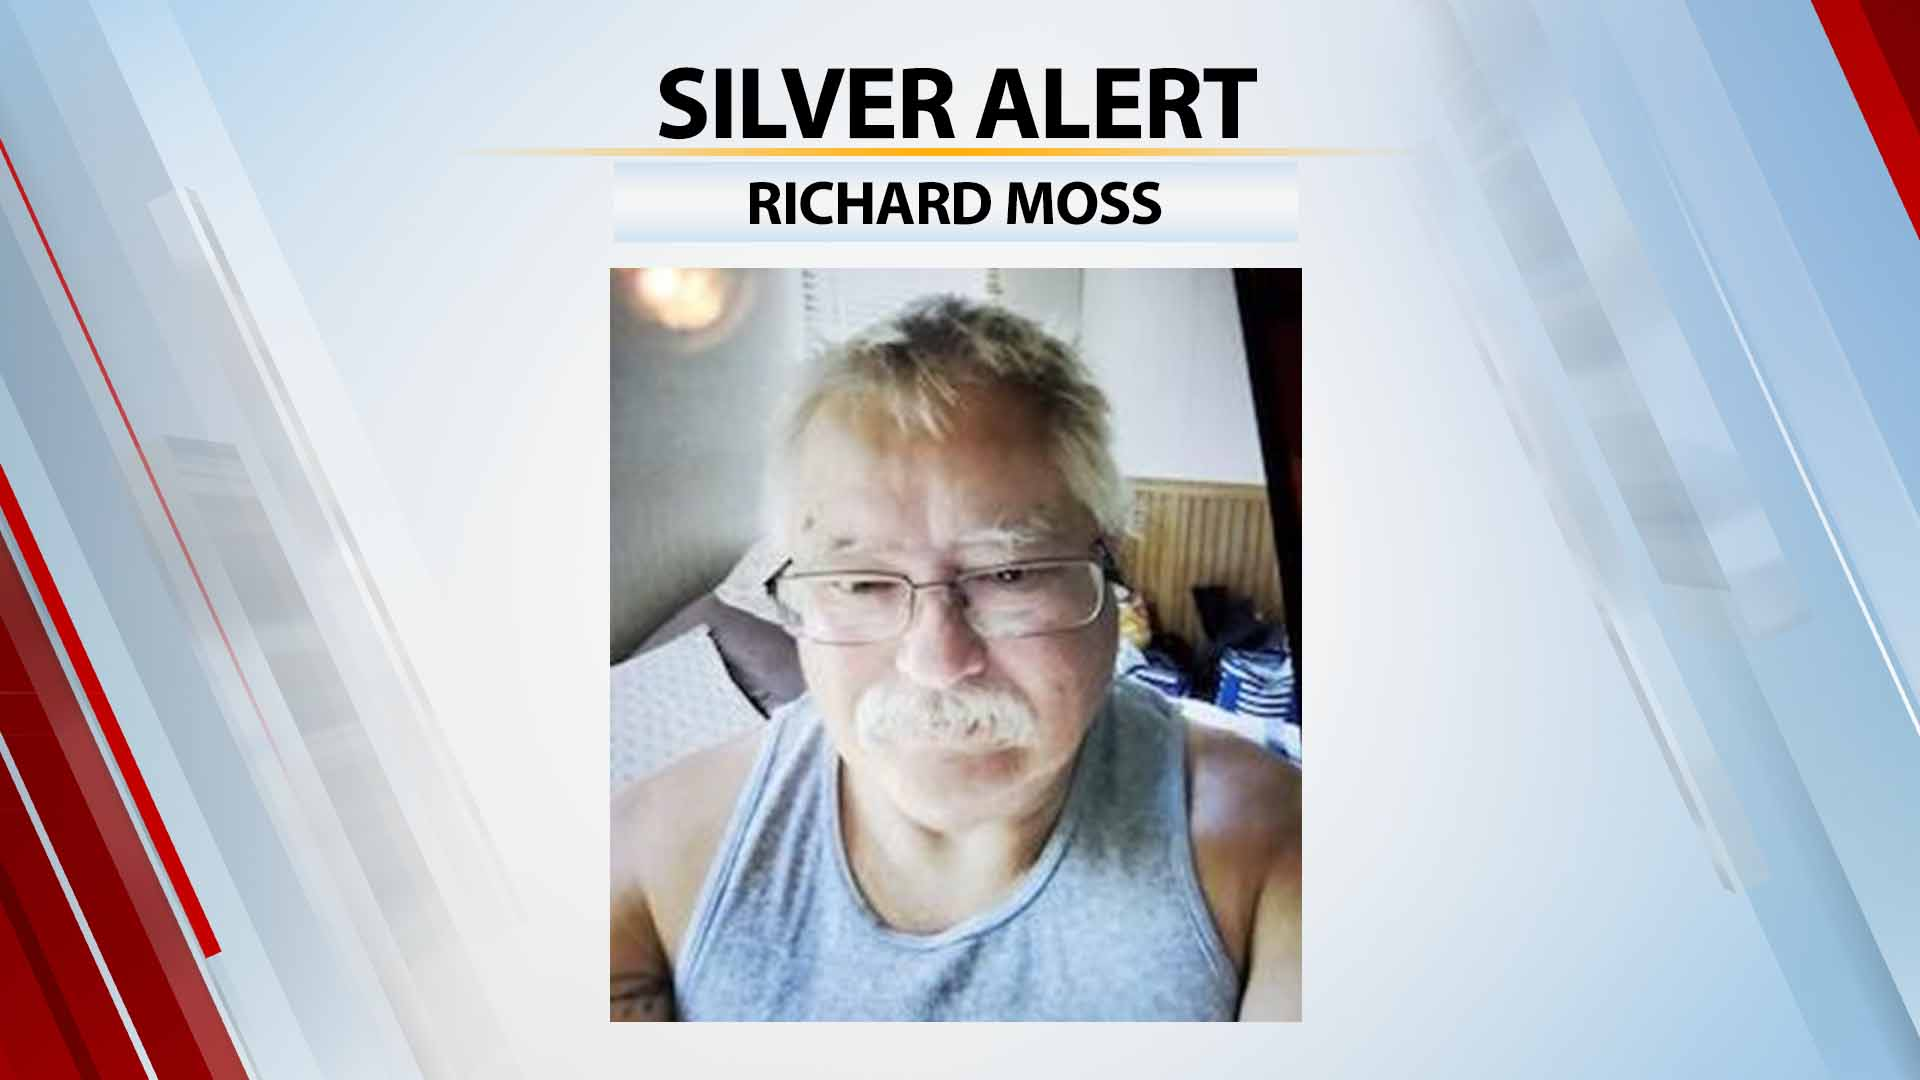 Silver Alert Issued For Missing 62-Year-Old Richard Moss